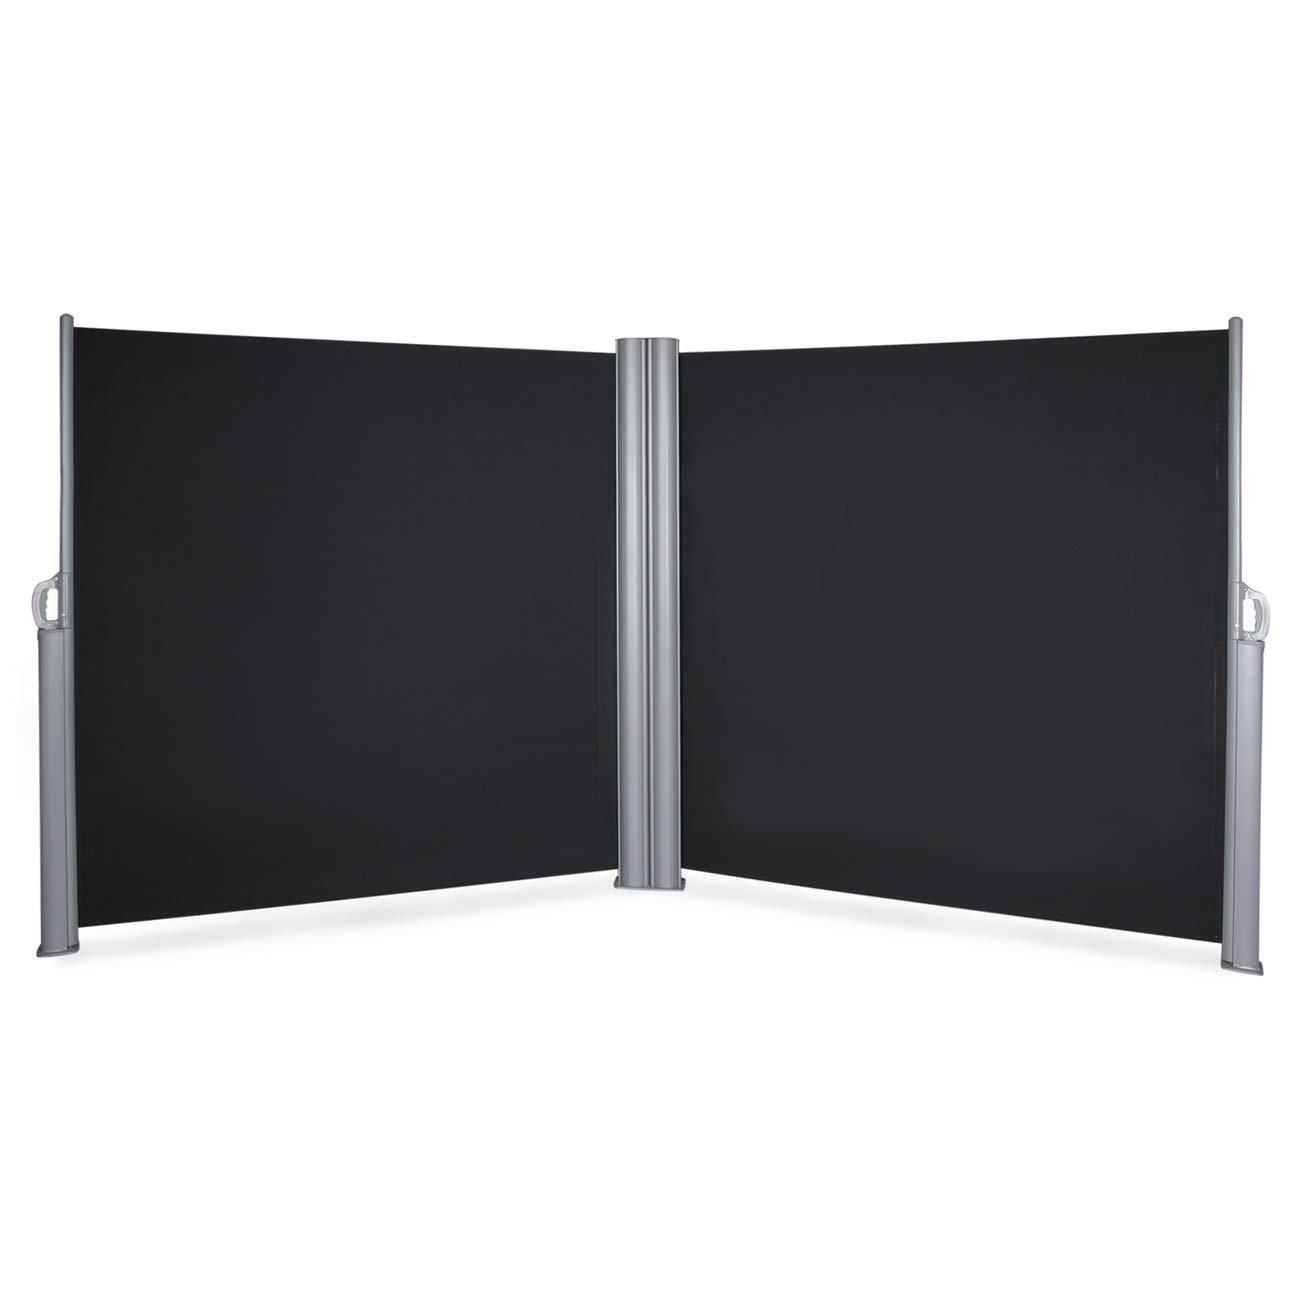 BELLEZE Retractable Double Folding Side Awning Screen Fence Patio Privacy Divider 19.6 x 5.2 ft , Black